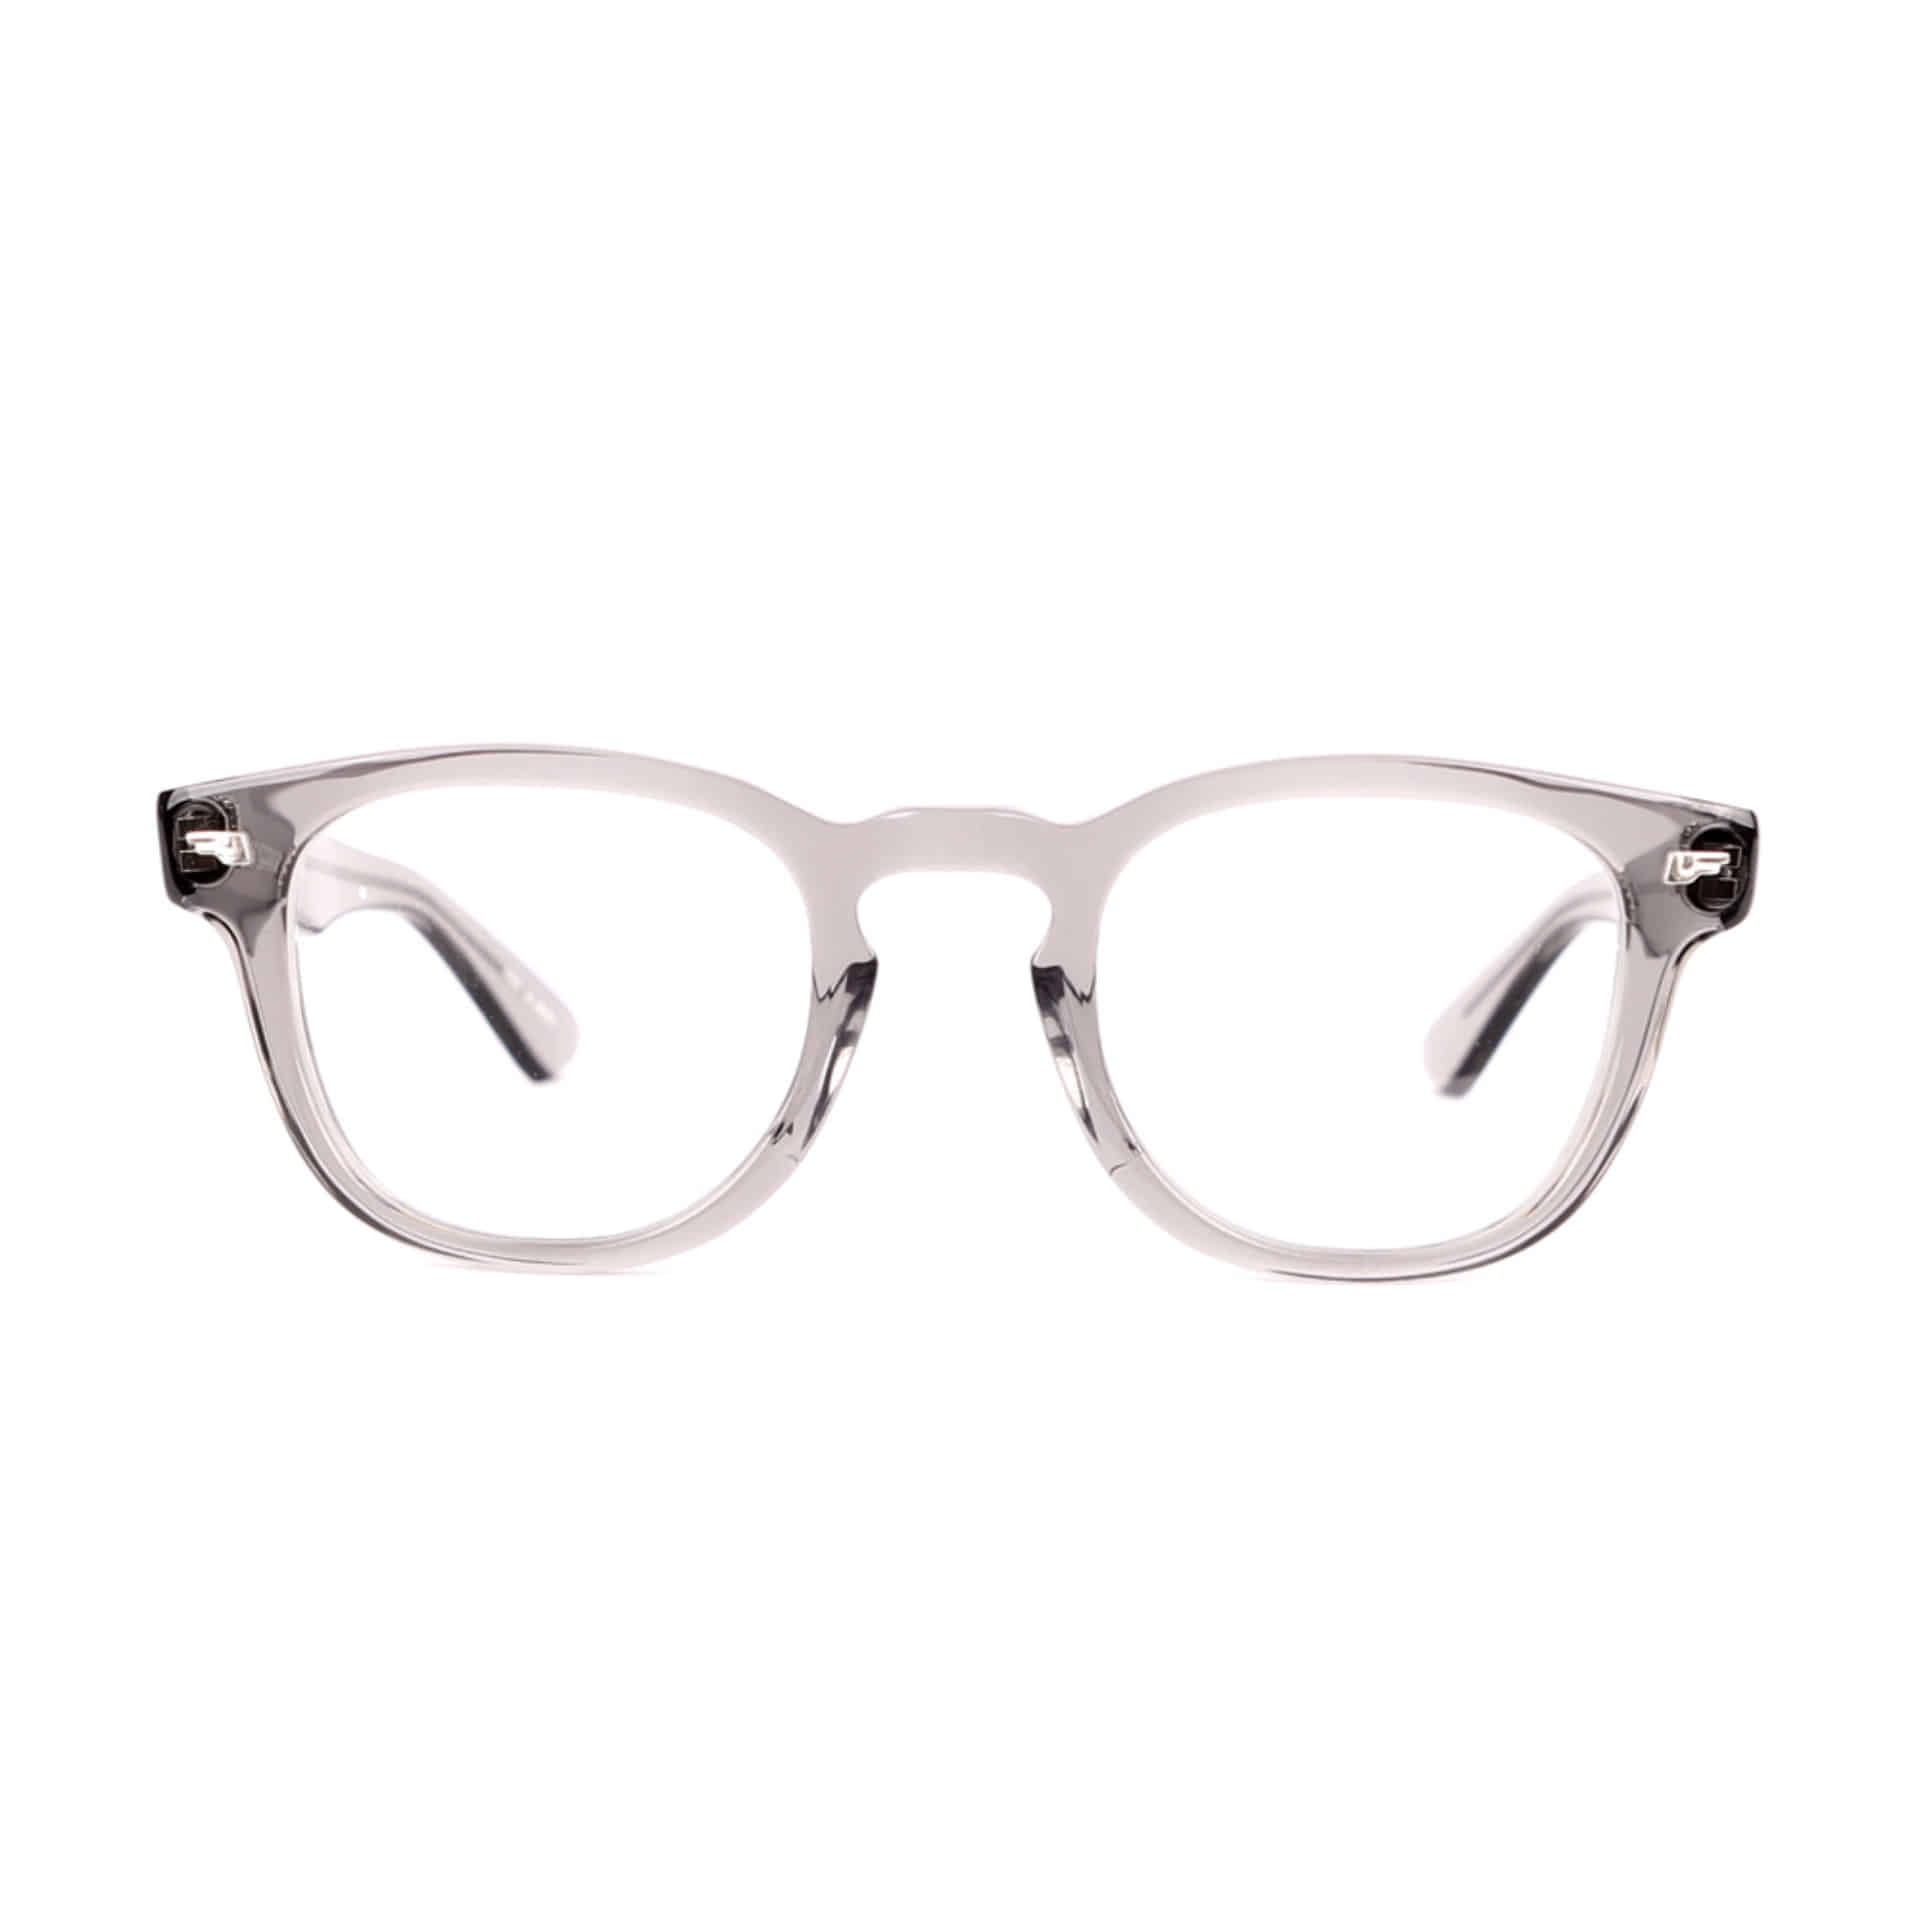 KANEKO OPTICAL X SD SUNGLASSES(GRAY X CLEAR)